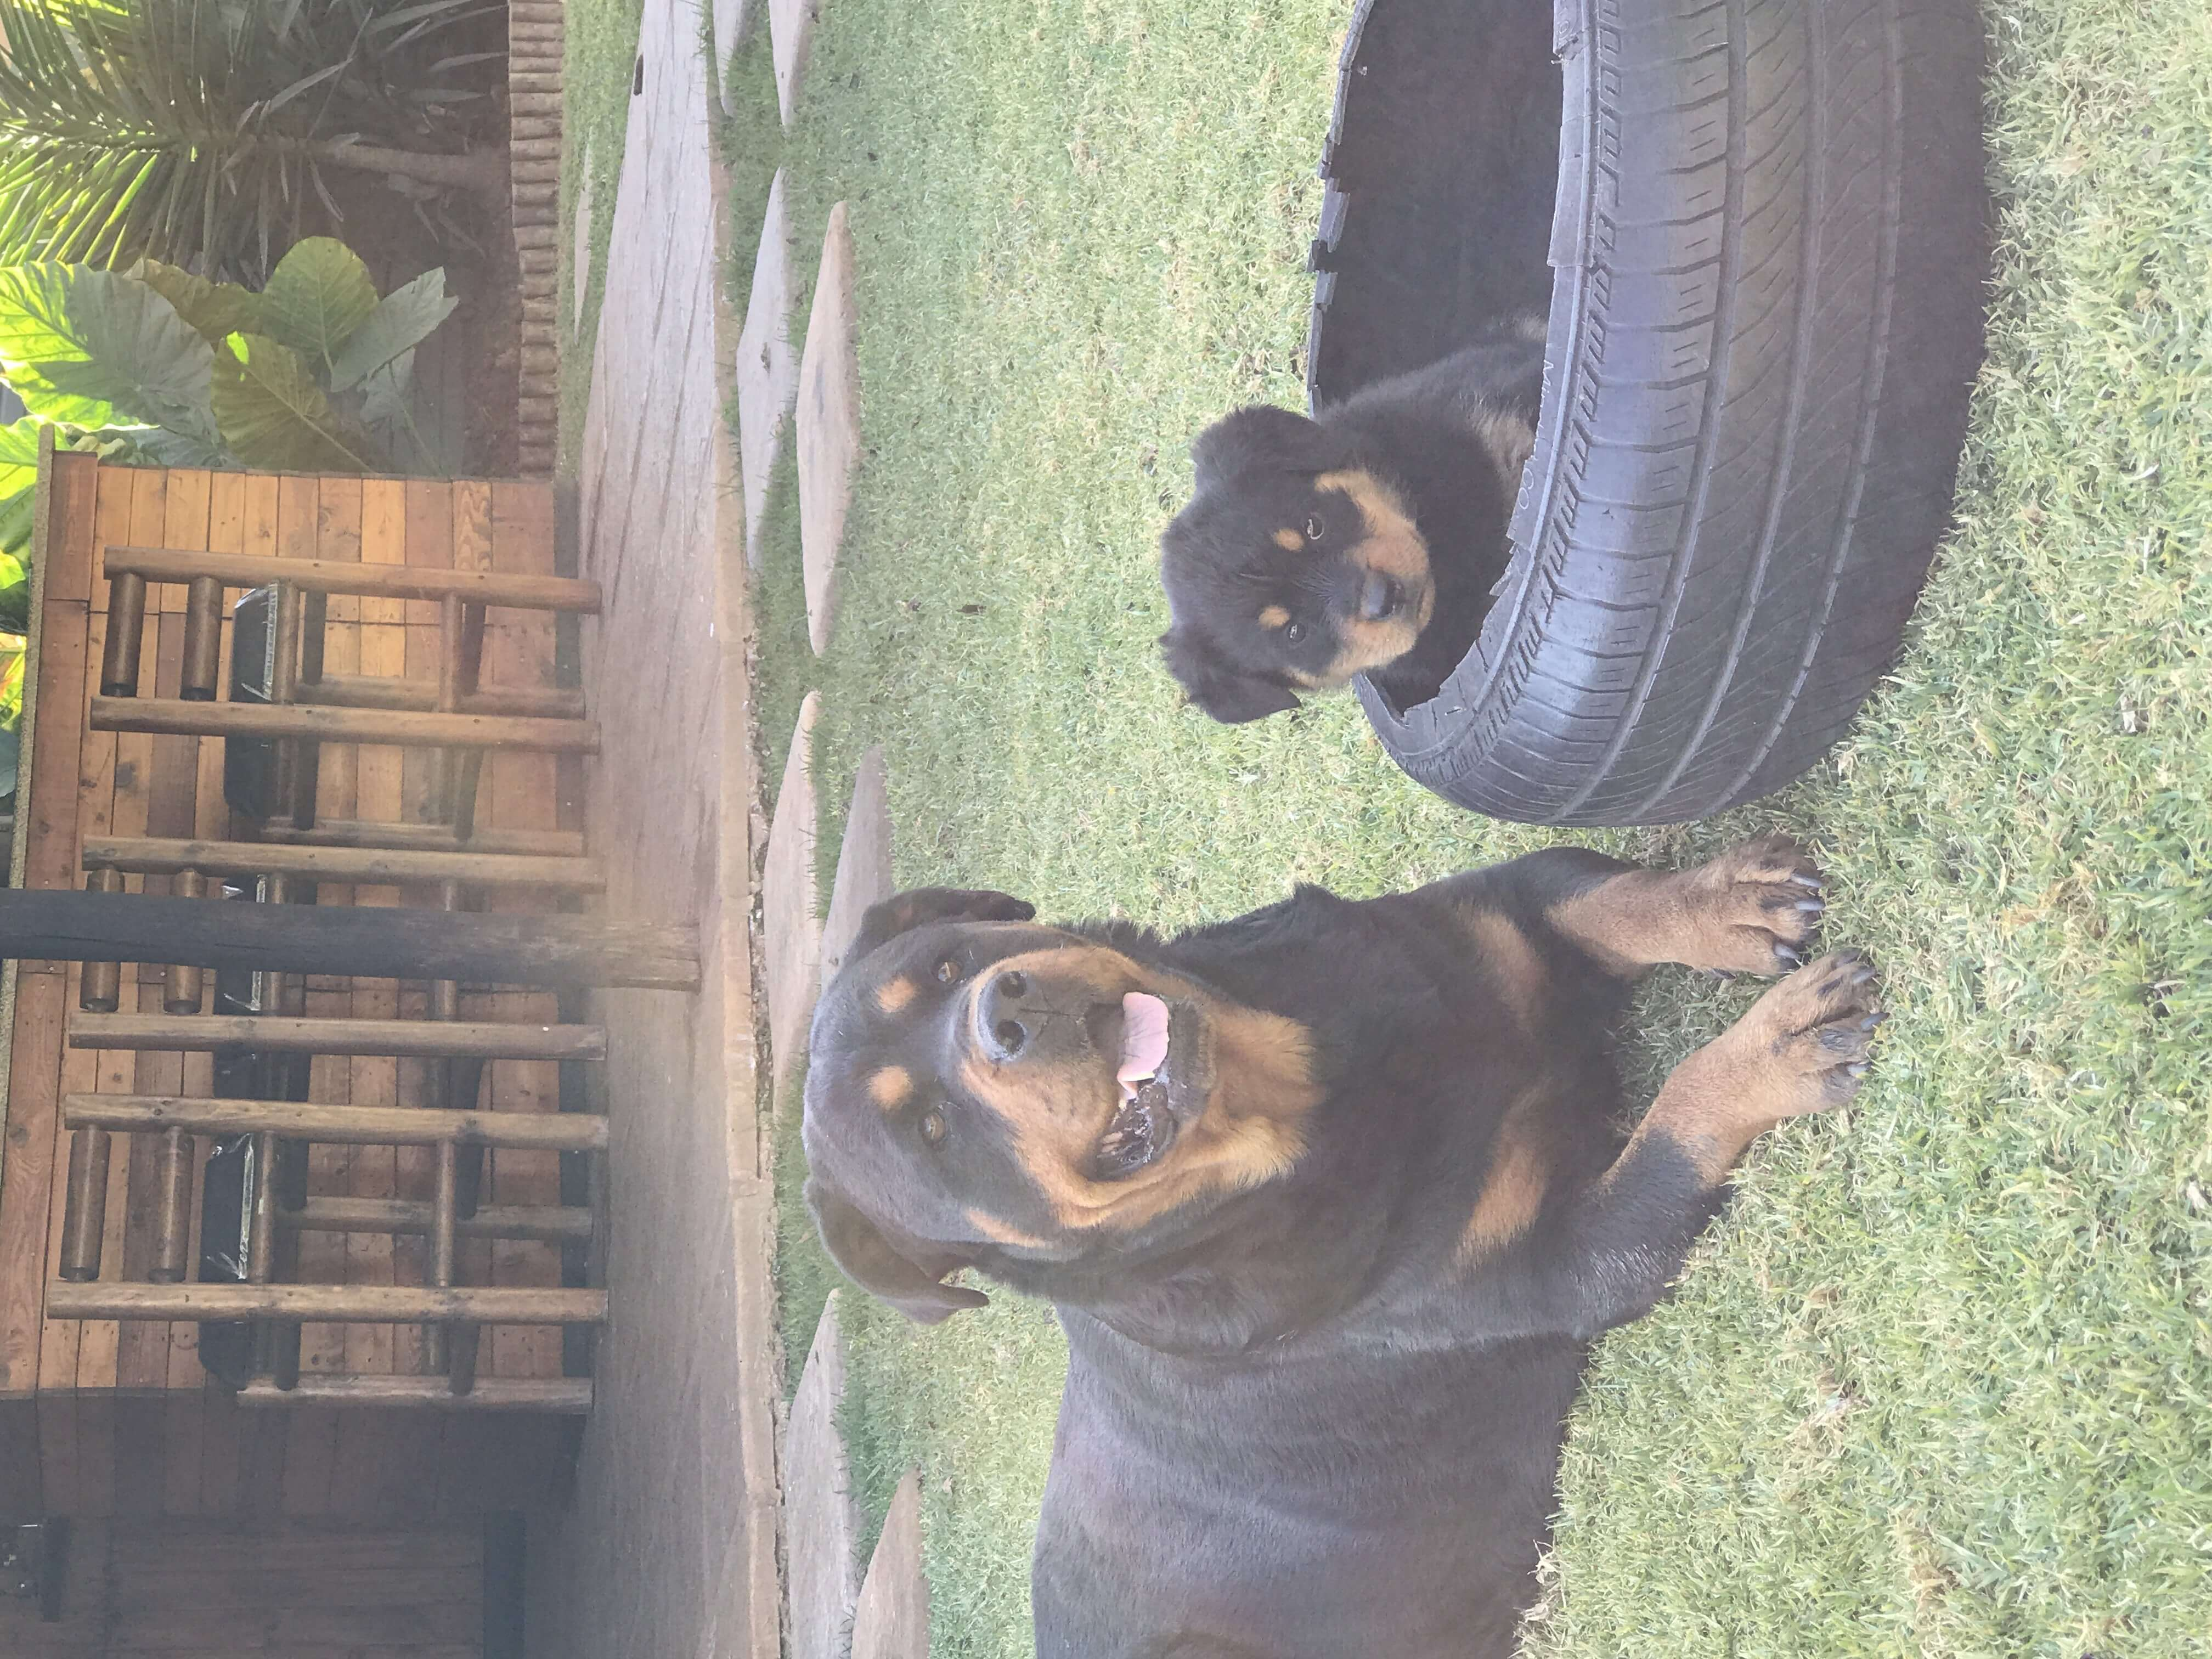 Rottweiler Puppies for Sale in Pretoria by Darrell May